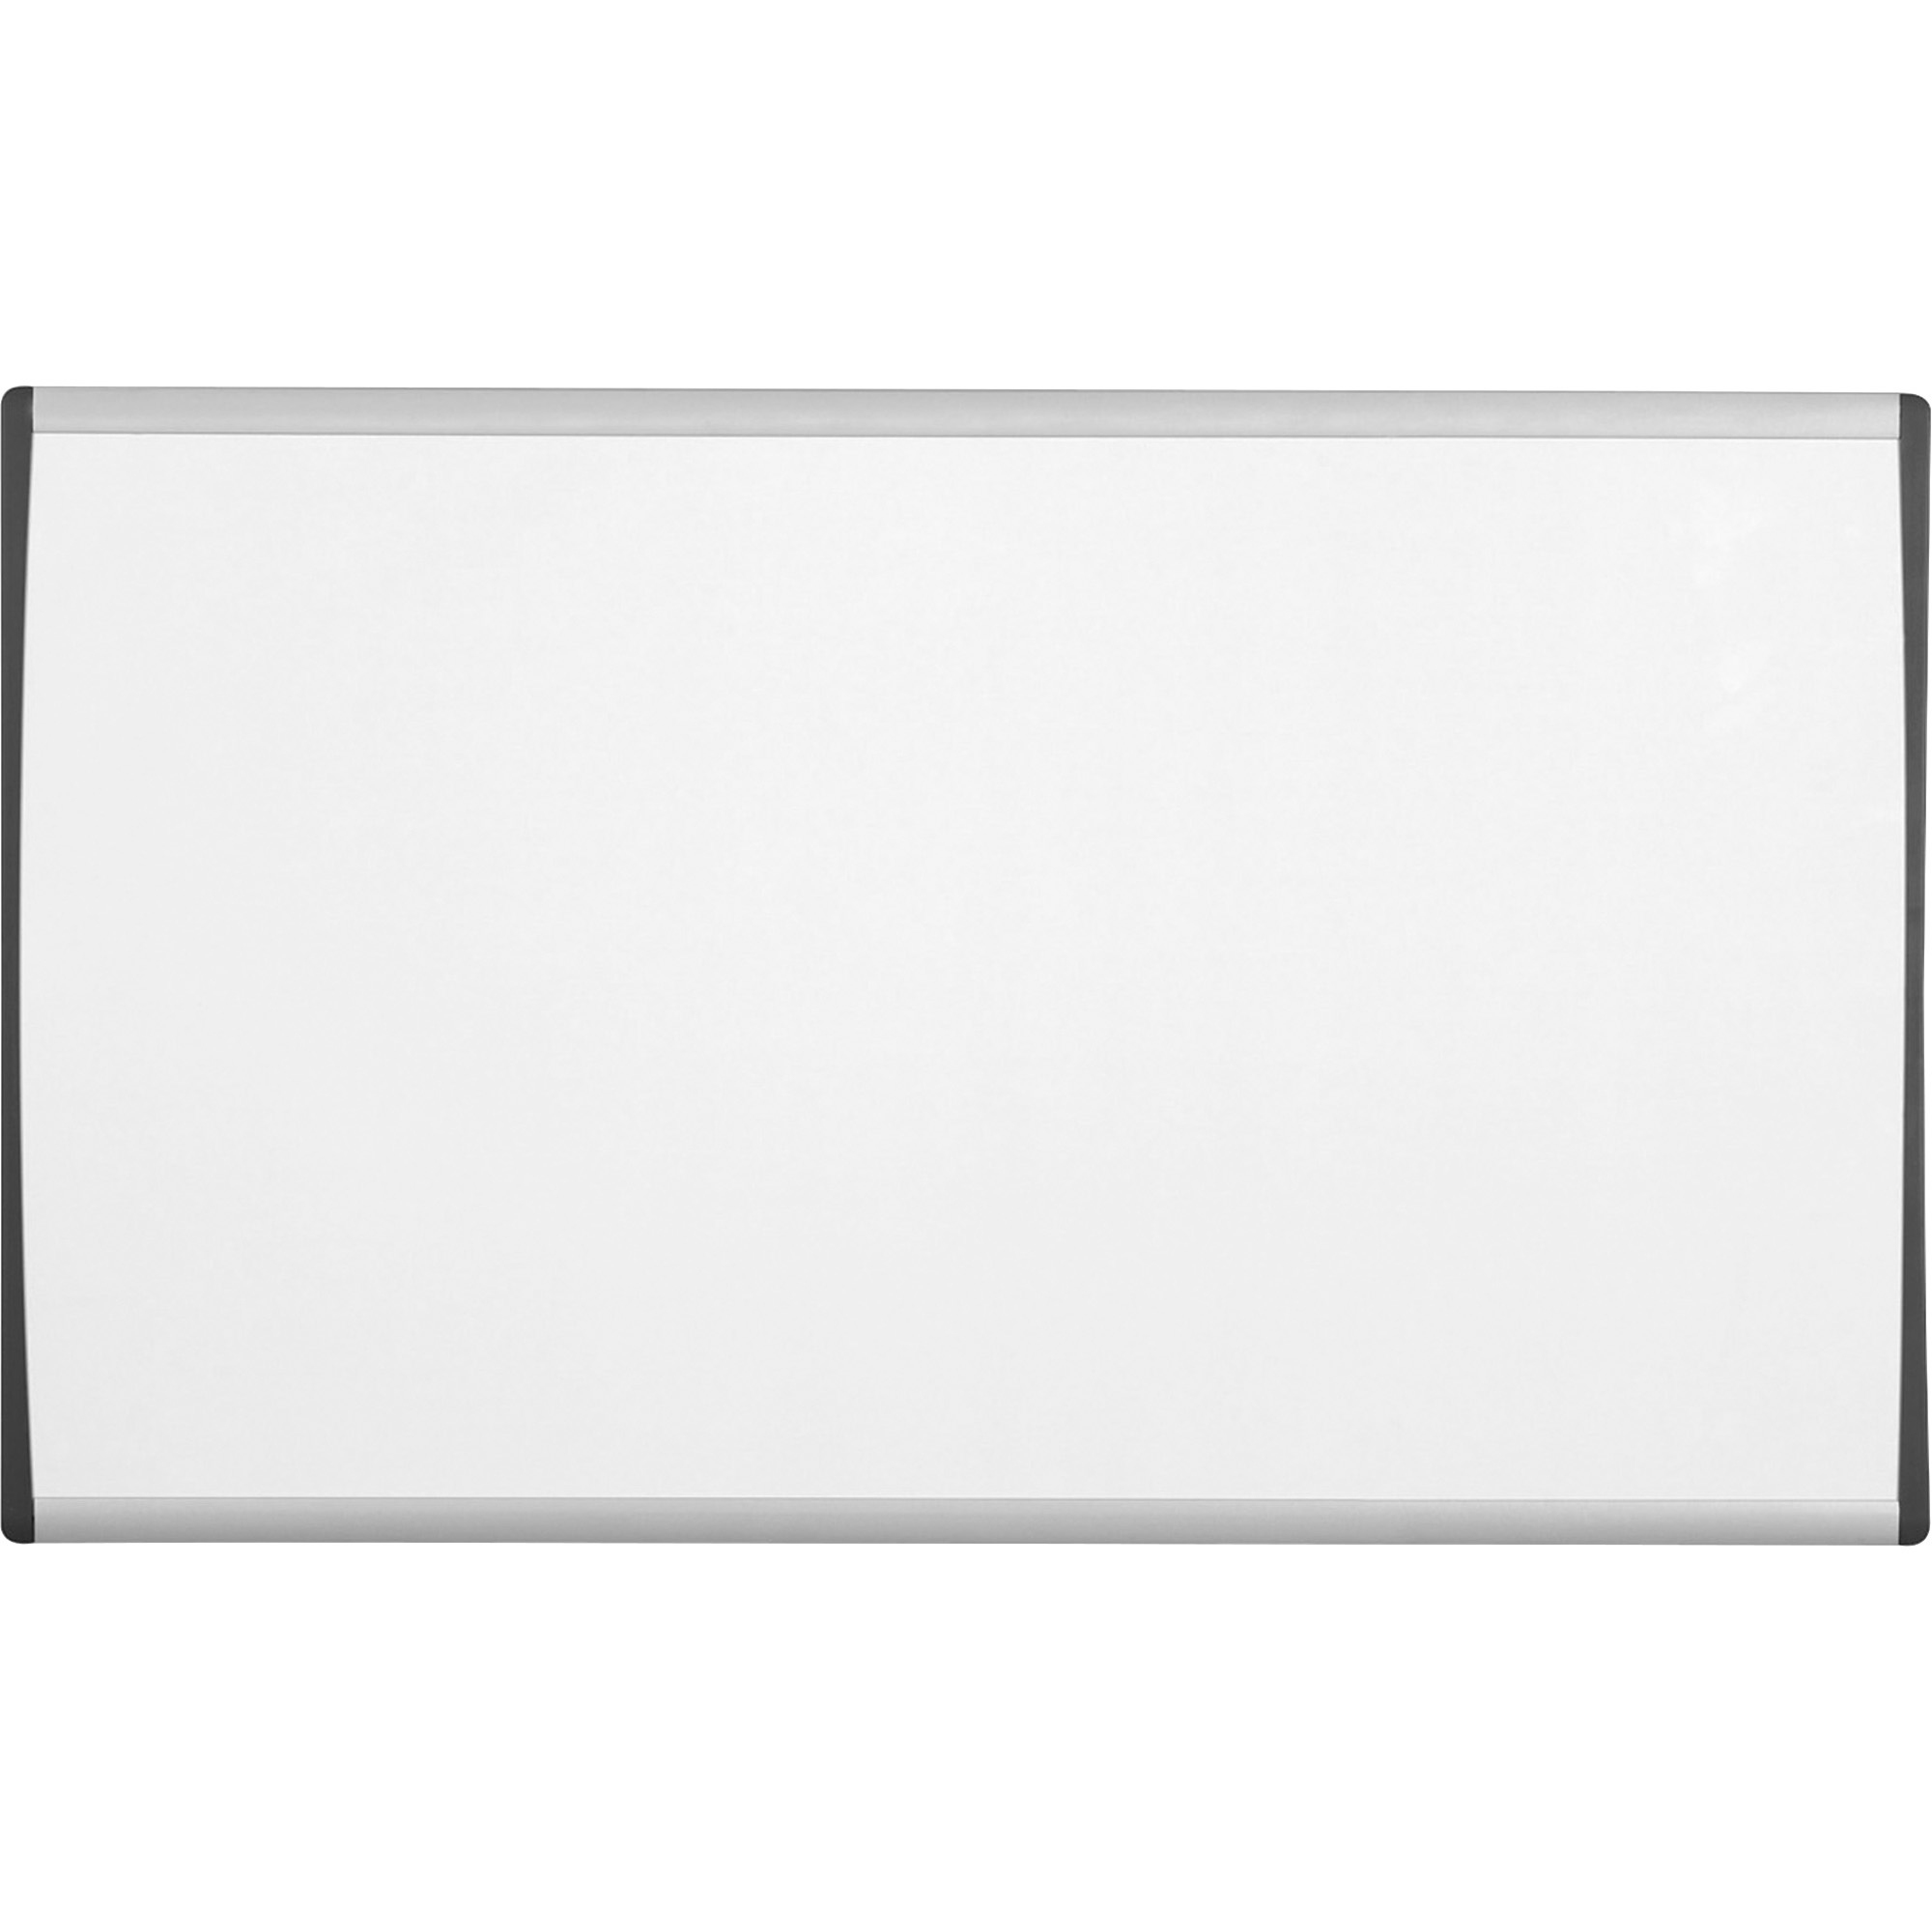 Acco Brands Corporation Quartet® Arc Cubicle Whiteboard - 24 (2 Ft) Width X 14 (1.2 Ft) Height - White Painted Steel Surface - Silver Aluminum Frame - Horizontal - 1 / Each